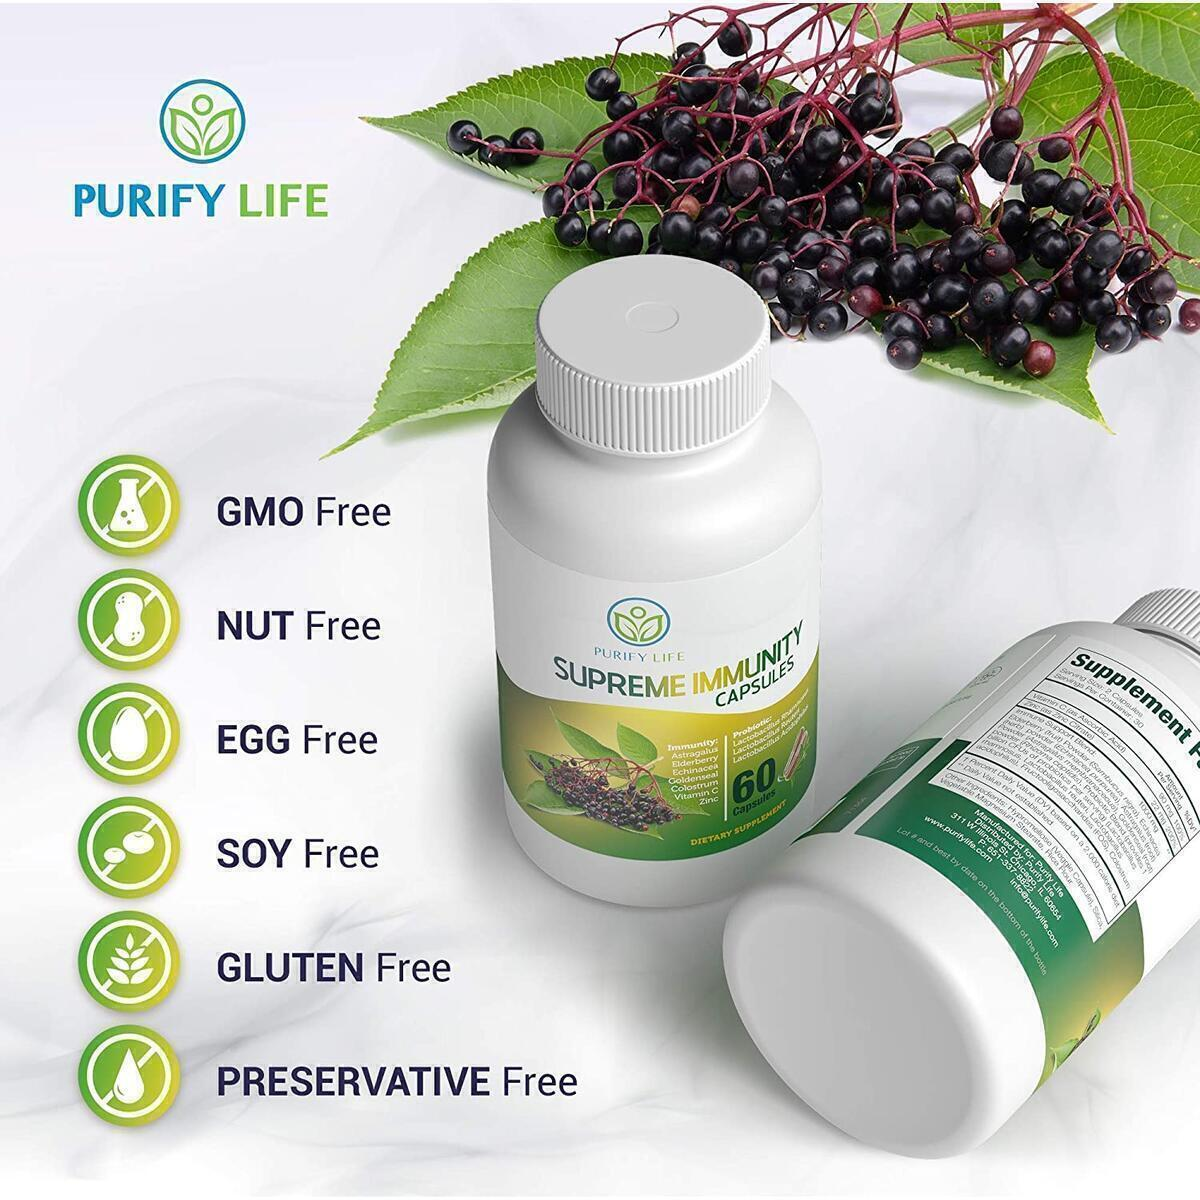 Immune System Support & Probiotic Capsules - Elderberry with Echinacea, Zinc, Goldenseal, Astralagus and Digestion Booster - Vegan Cold and Allergy Relief Supplement - Replace Gummies, Syrup, Tablets